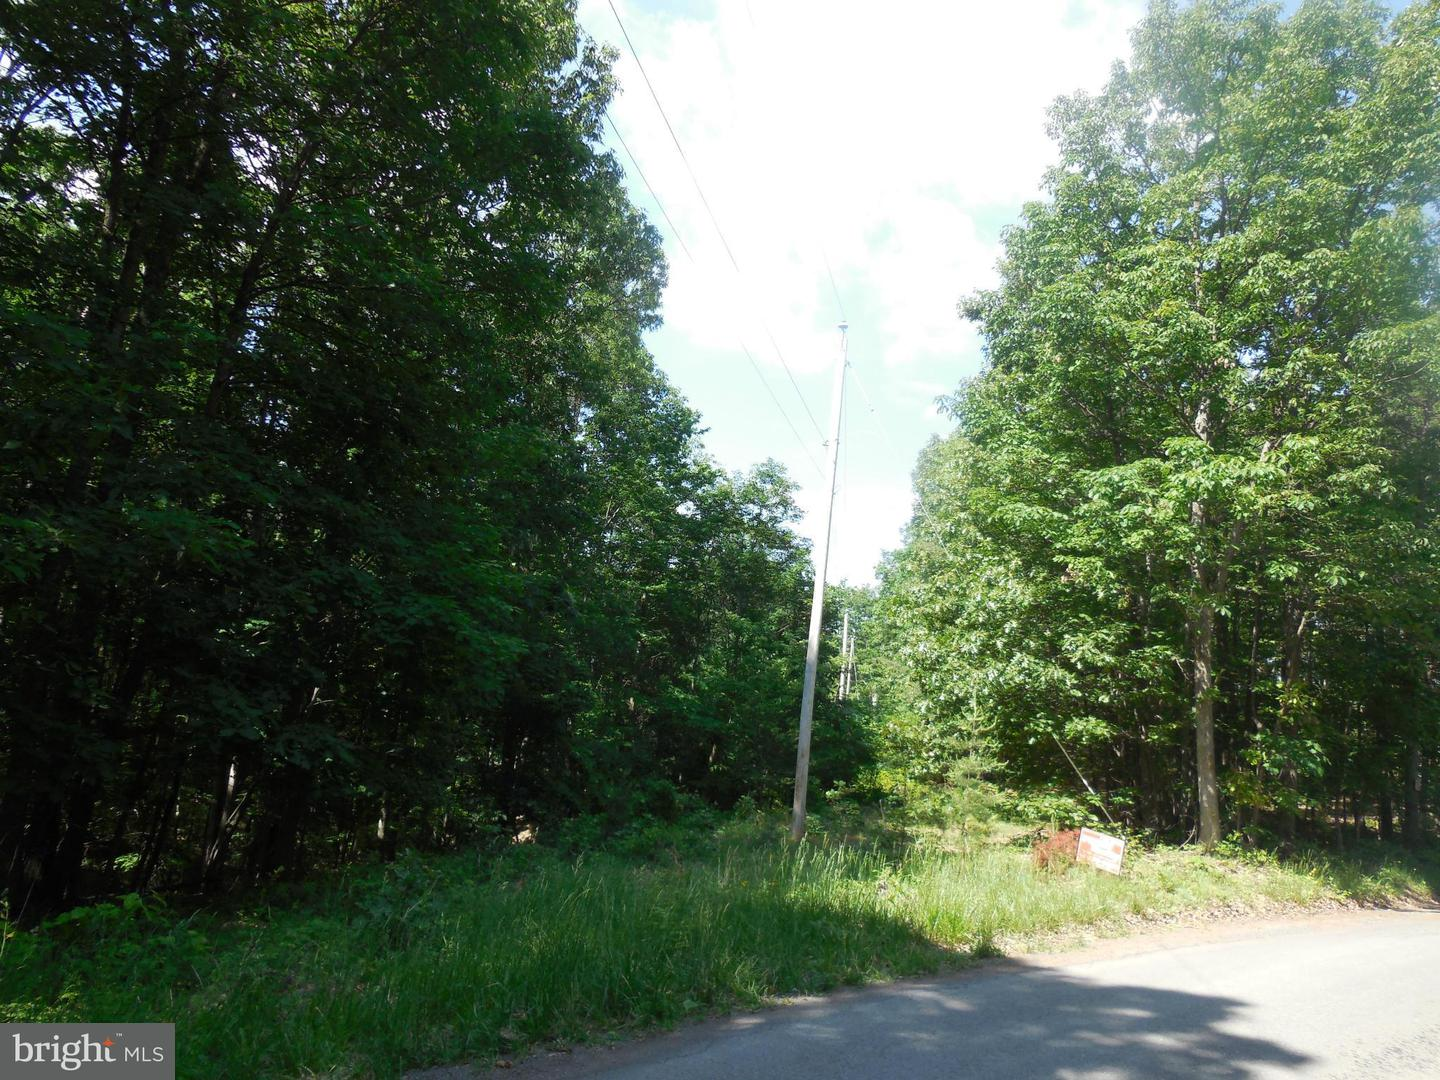 Land for Sale at Duckwall Rd Berkeley Springs, West Virginia 25411 United States